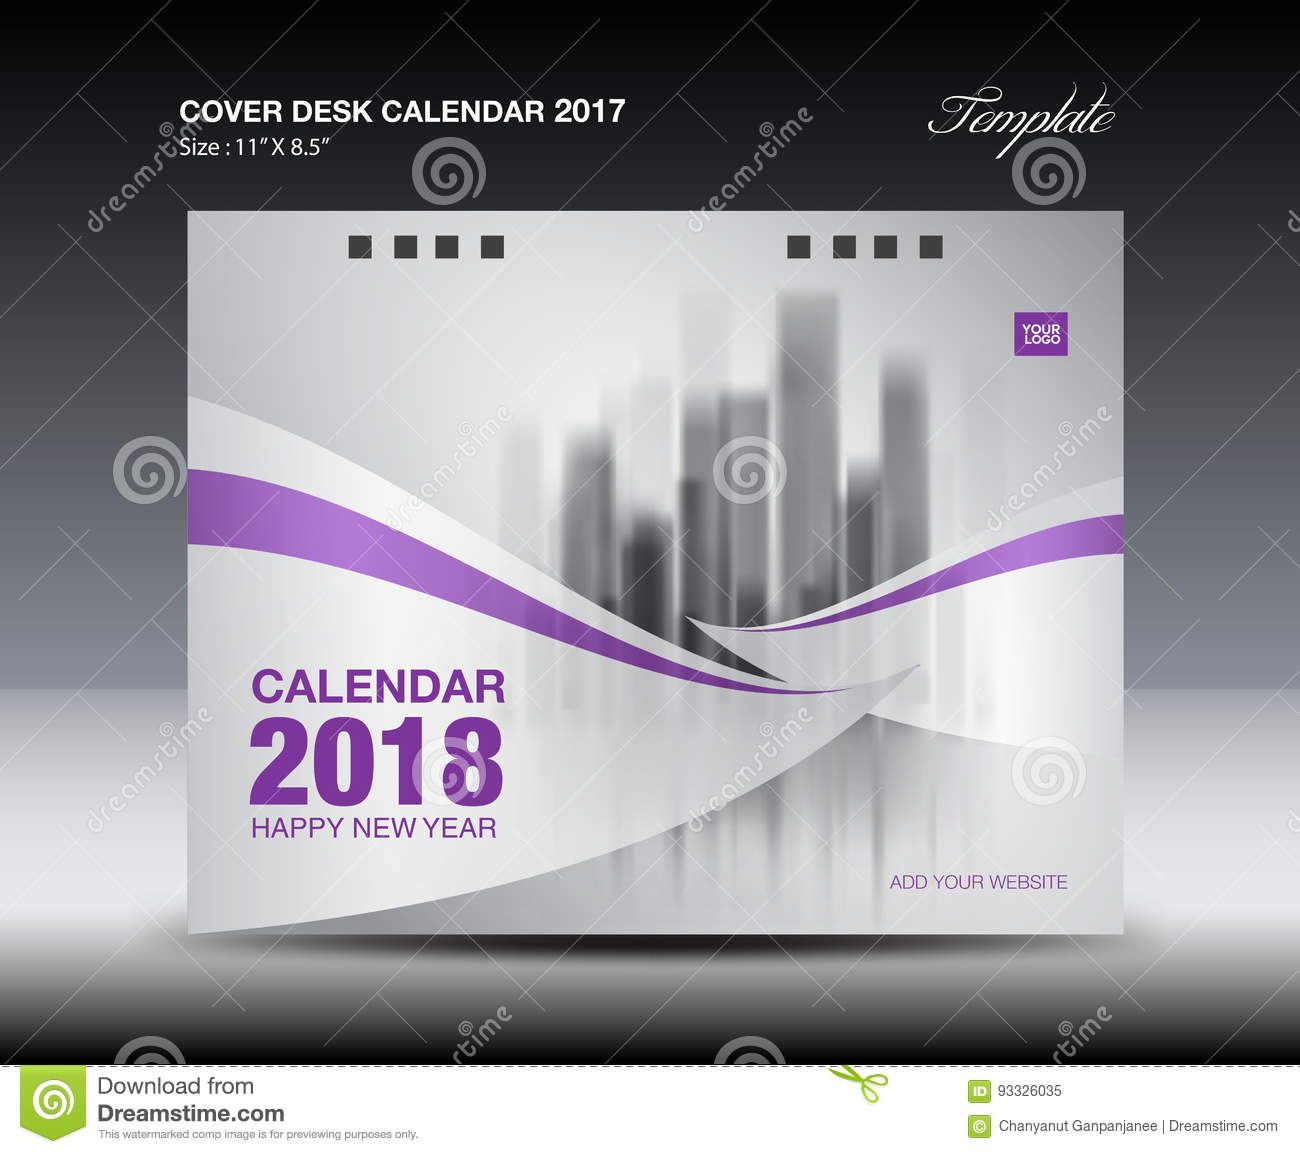 Cover Calendar Design Vector : Purple cover desk calendar design flyer template